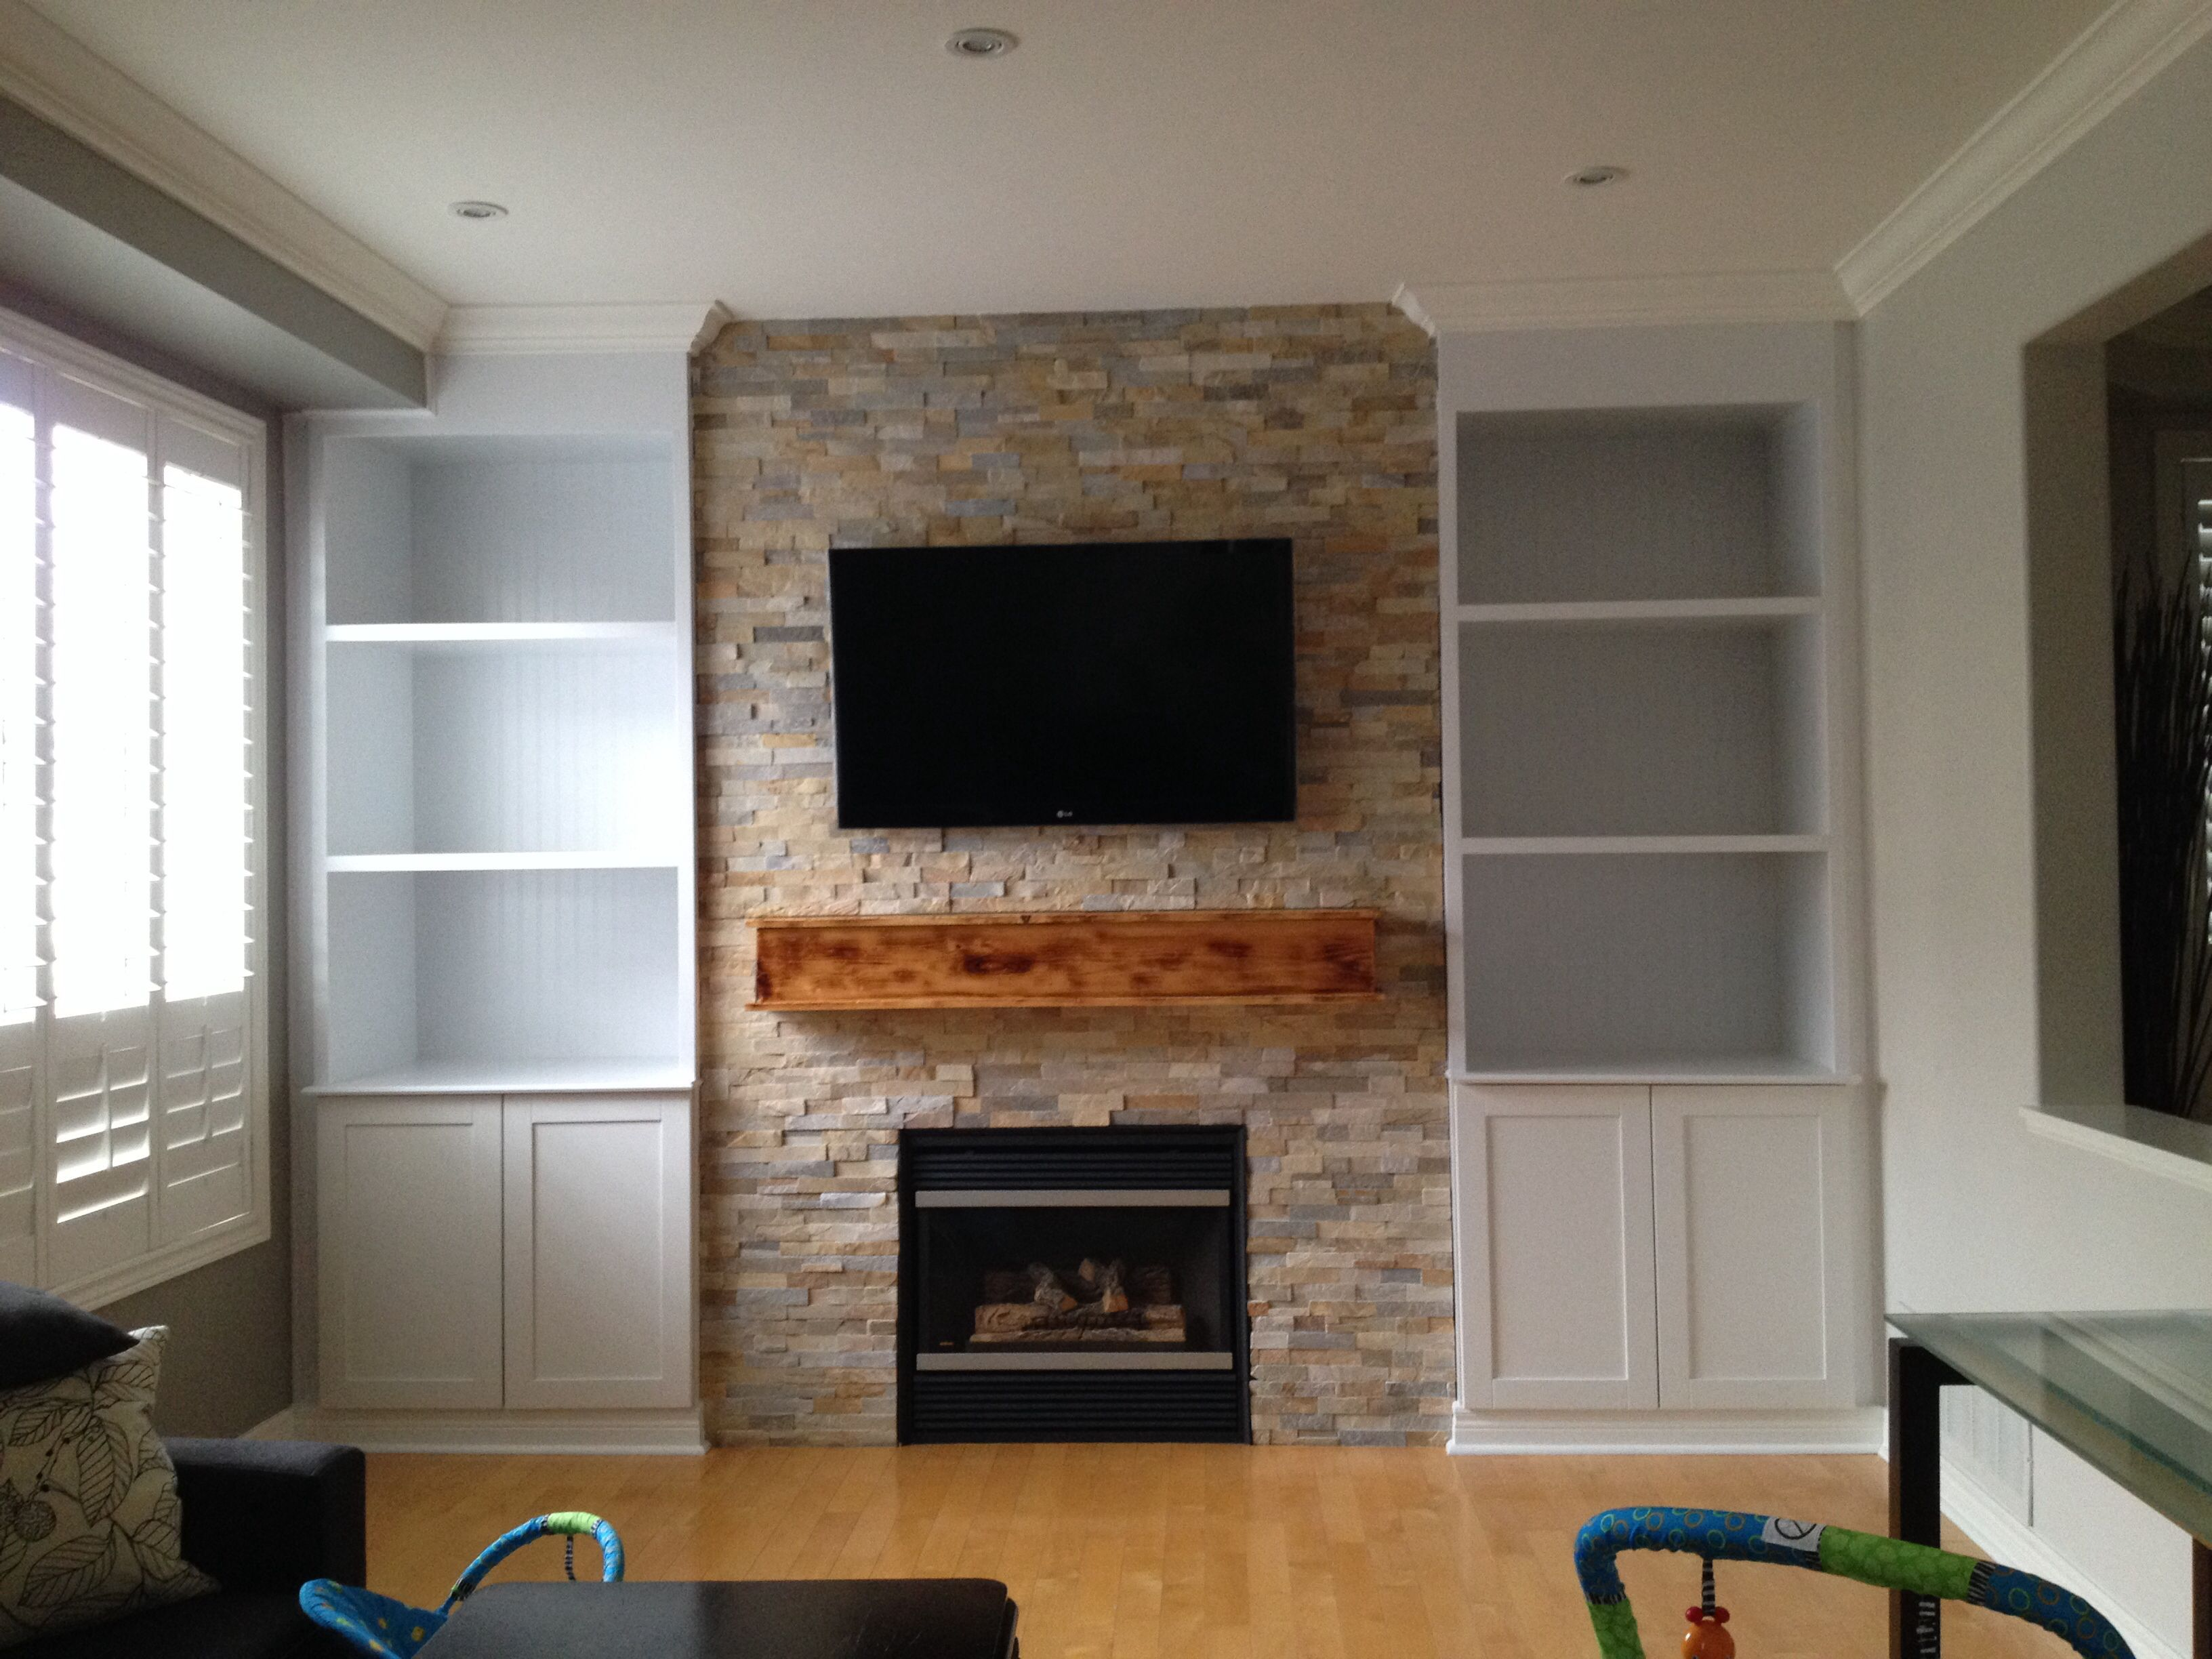 Fireplace Wall Units Built In Wall Unit With Fireplace Courtesy Of Www